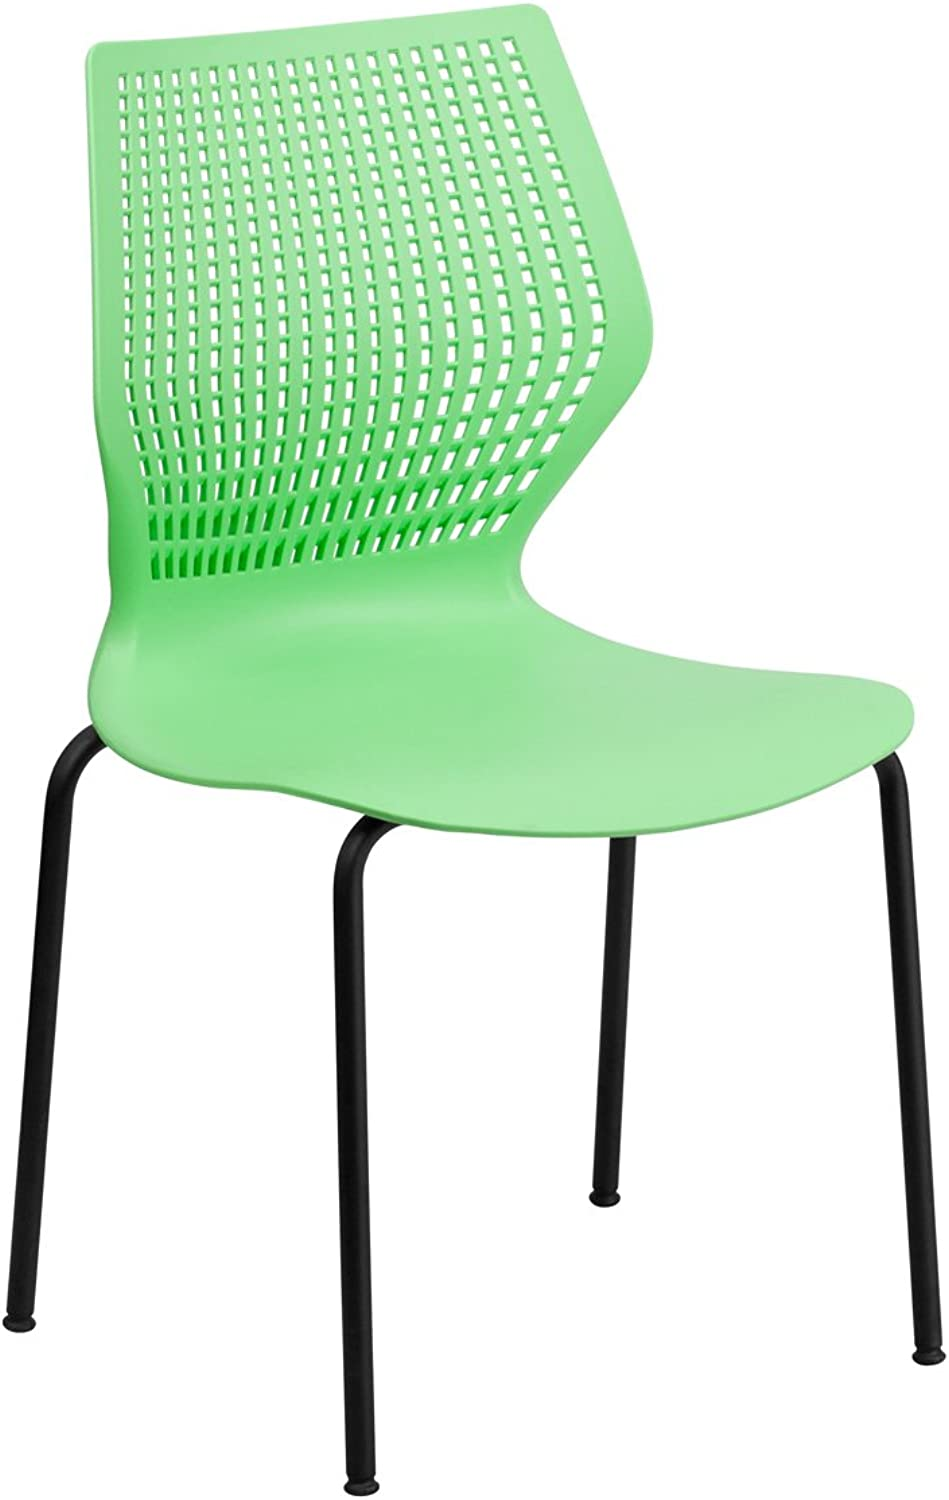 Offex OF-RUT-358-GN-GG Hercules Series Designer Green Stack Chair with Black Frame, 770 -Pound